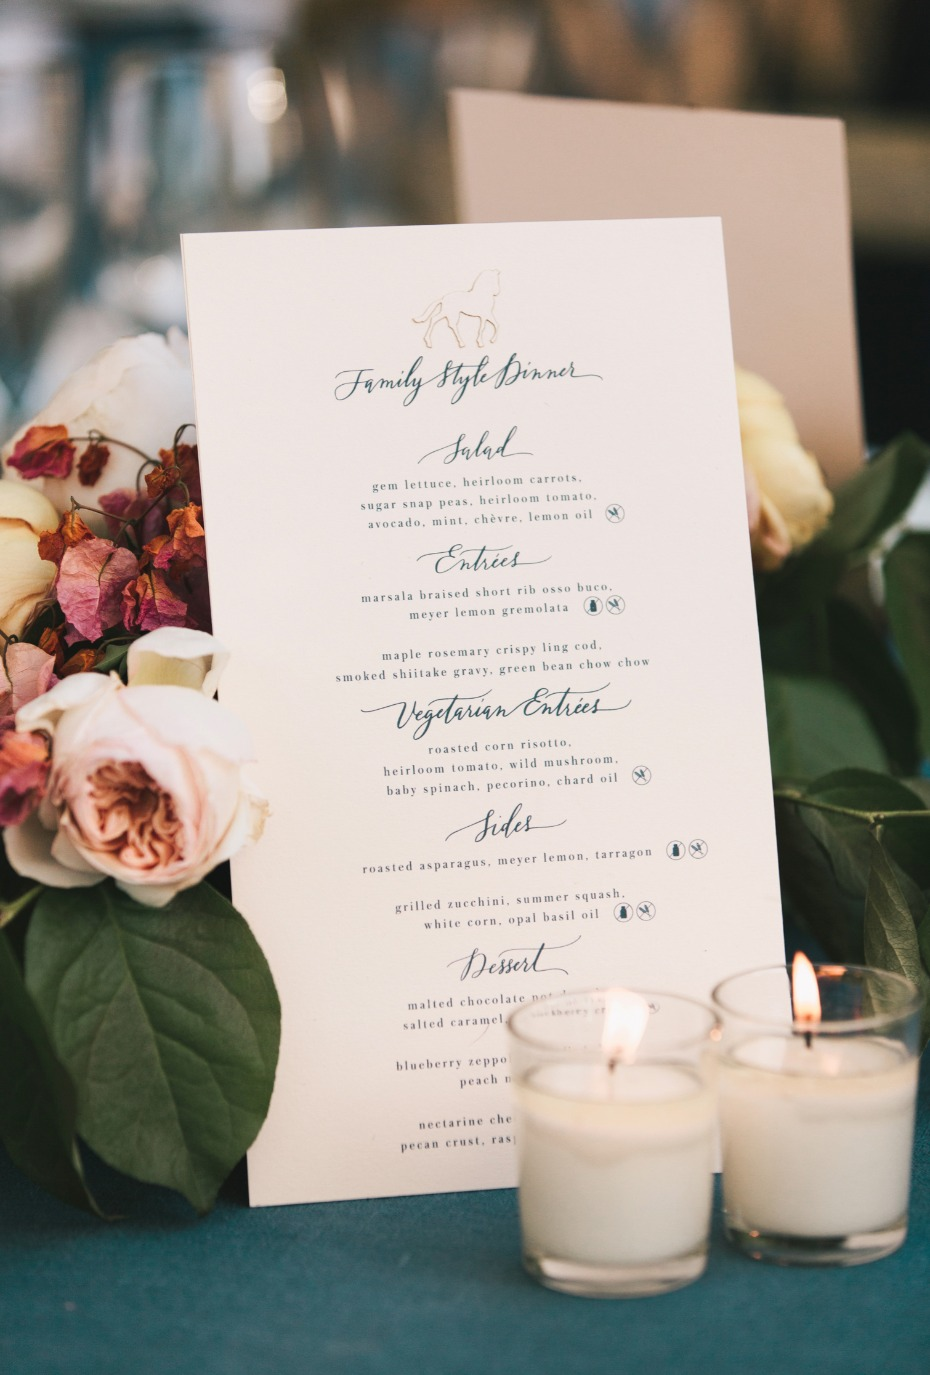 elegant and chic wedding menu